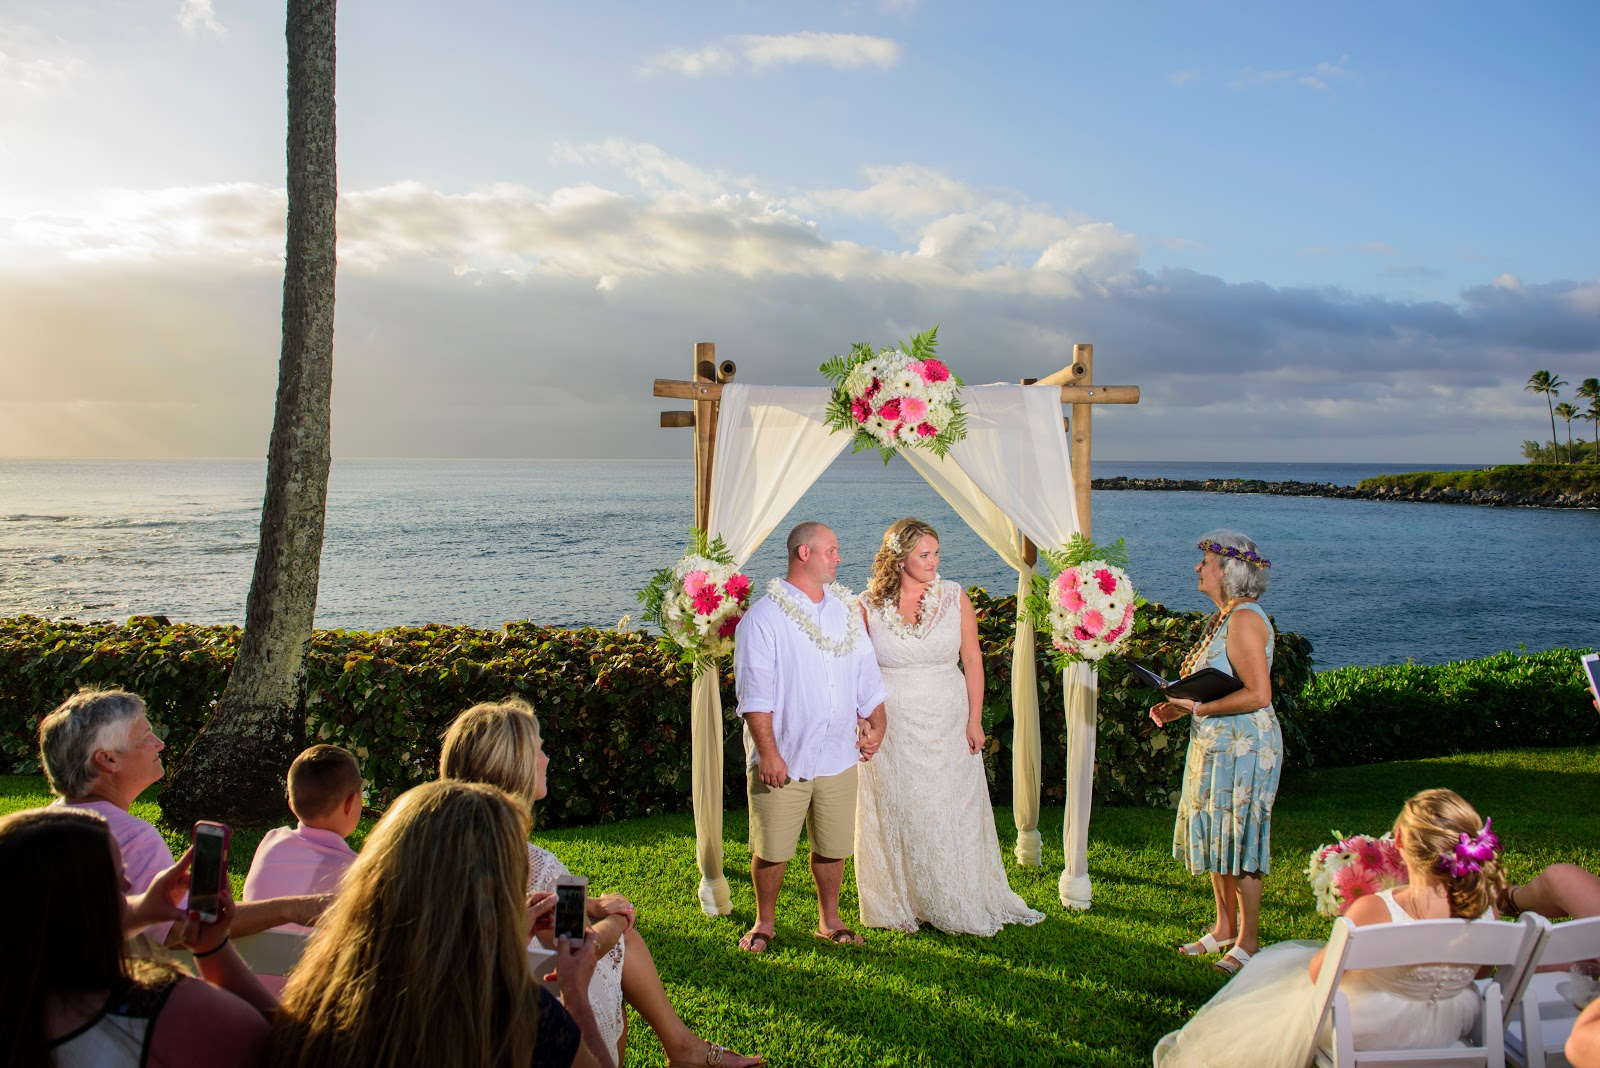 Maui wedding planners Marry Me Maui